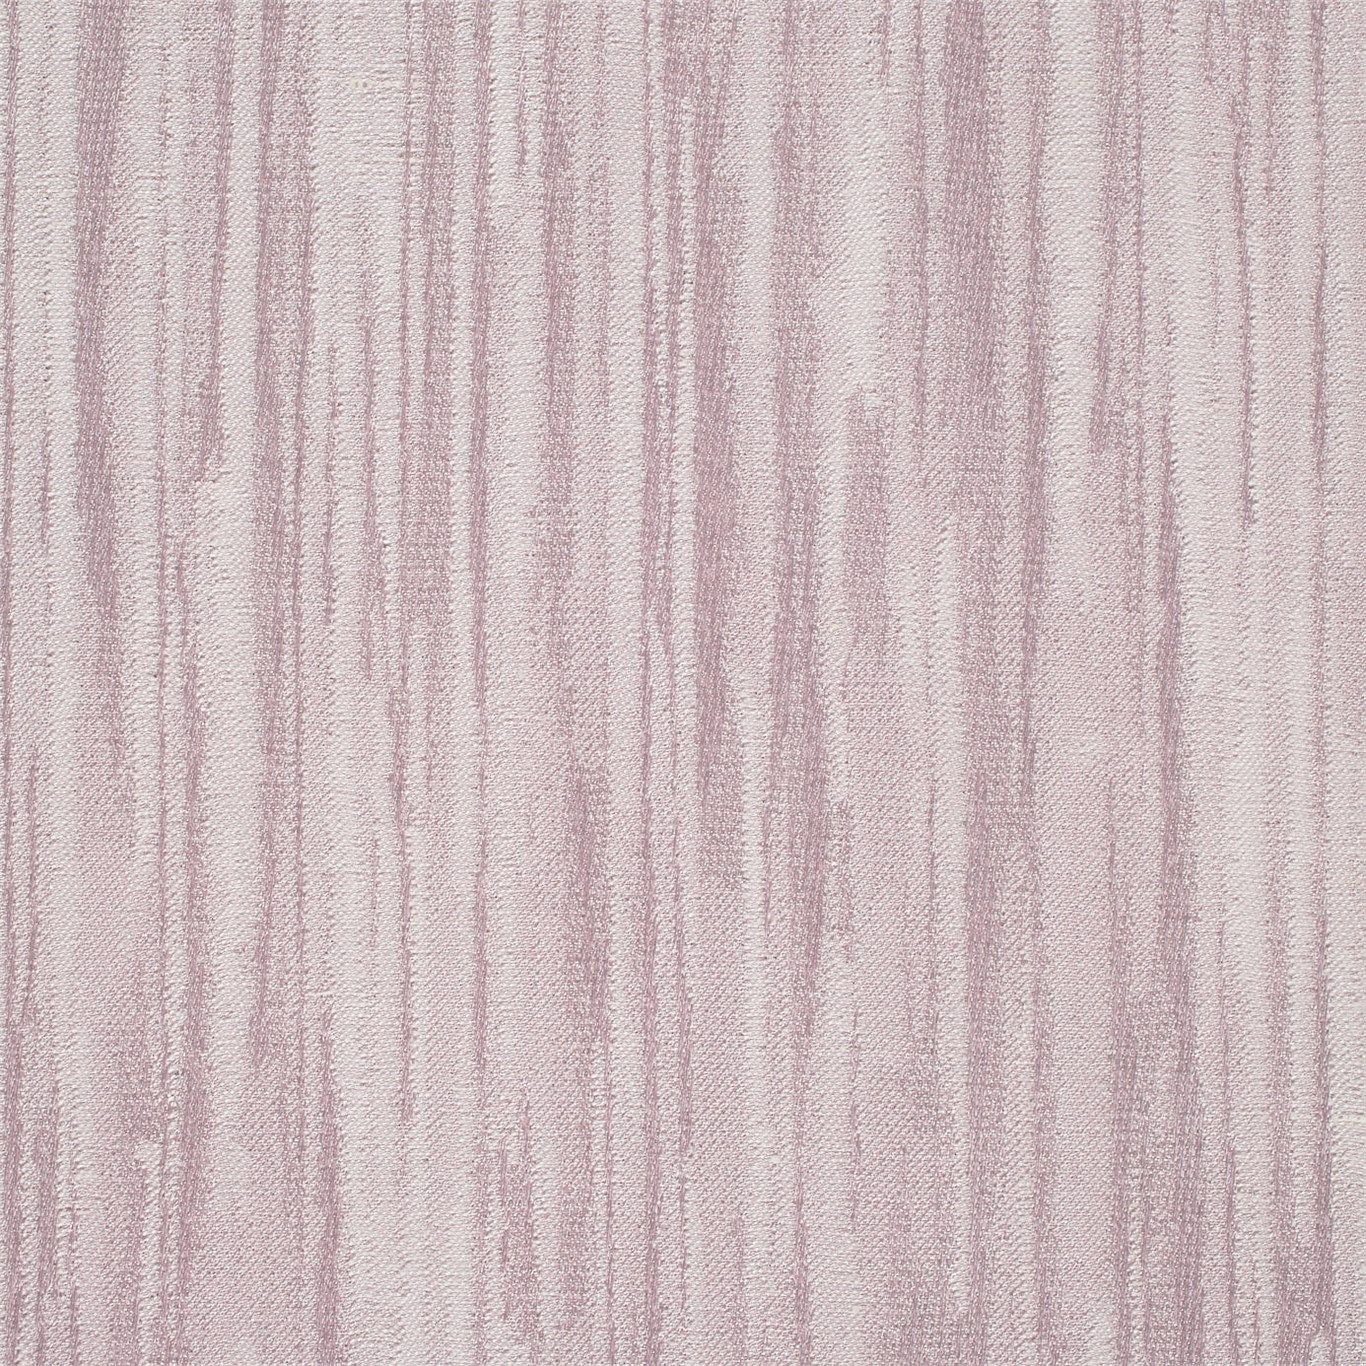 Trend | Cherwell Rose Quartz by Sanderson Fabric | TM Interiors Limited